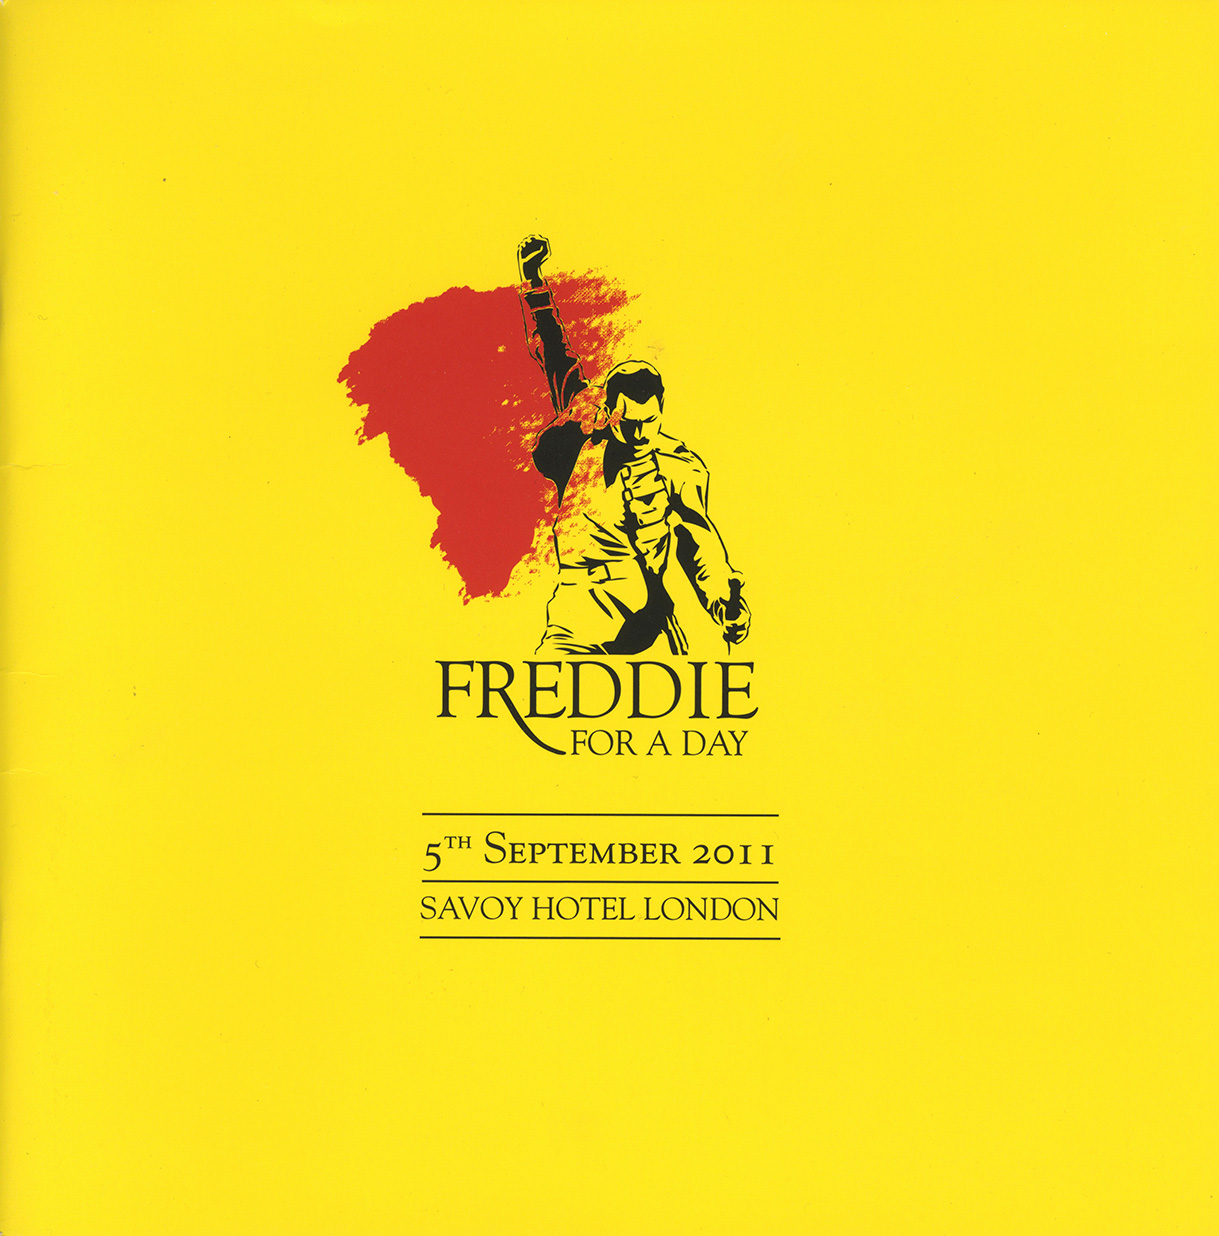 Freddie For A Day 2011 programme